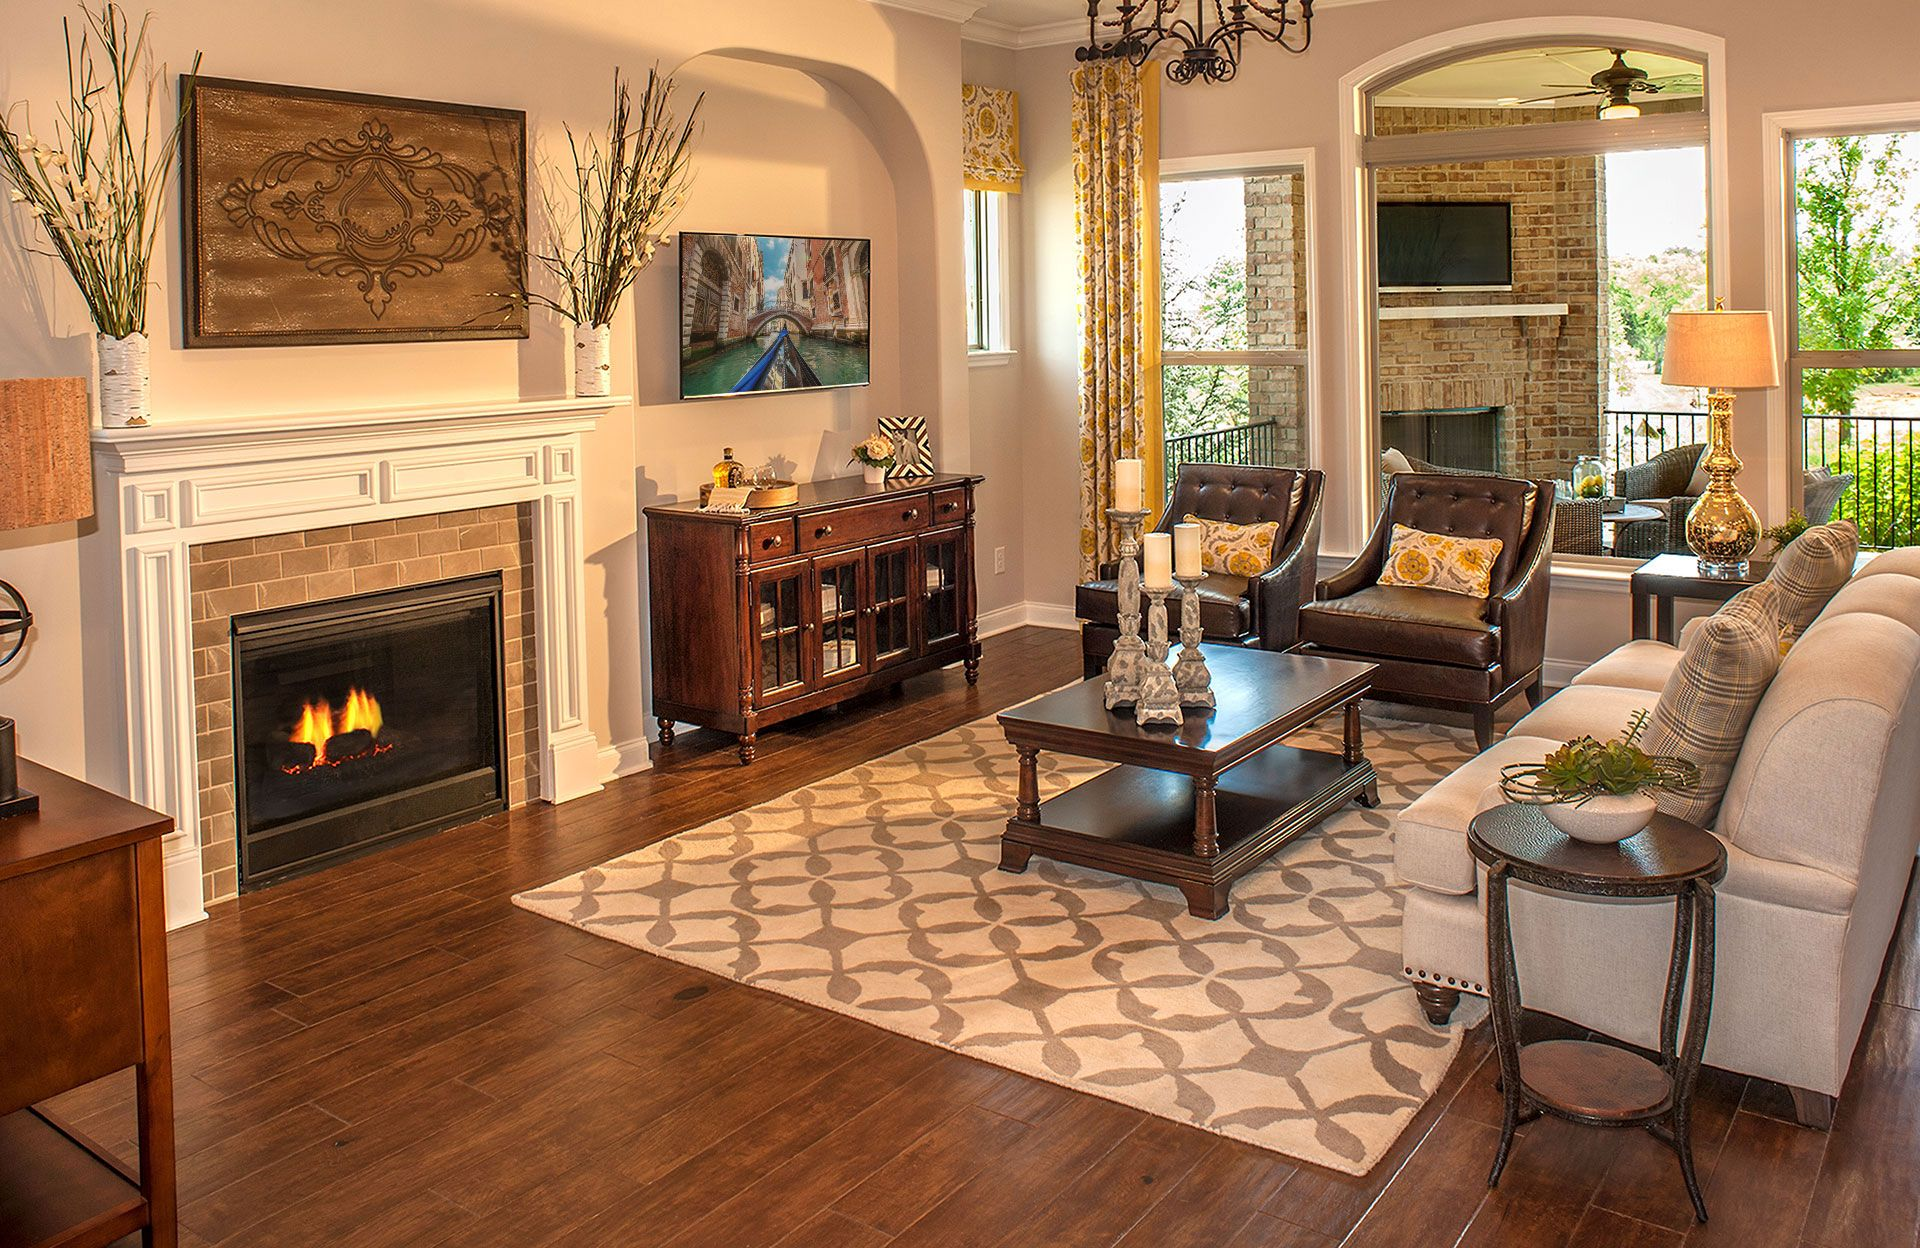 Summerlyn new homes in nolensville tn by drees homes for Dining in nolensville tn